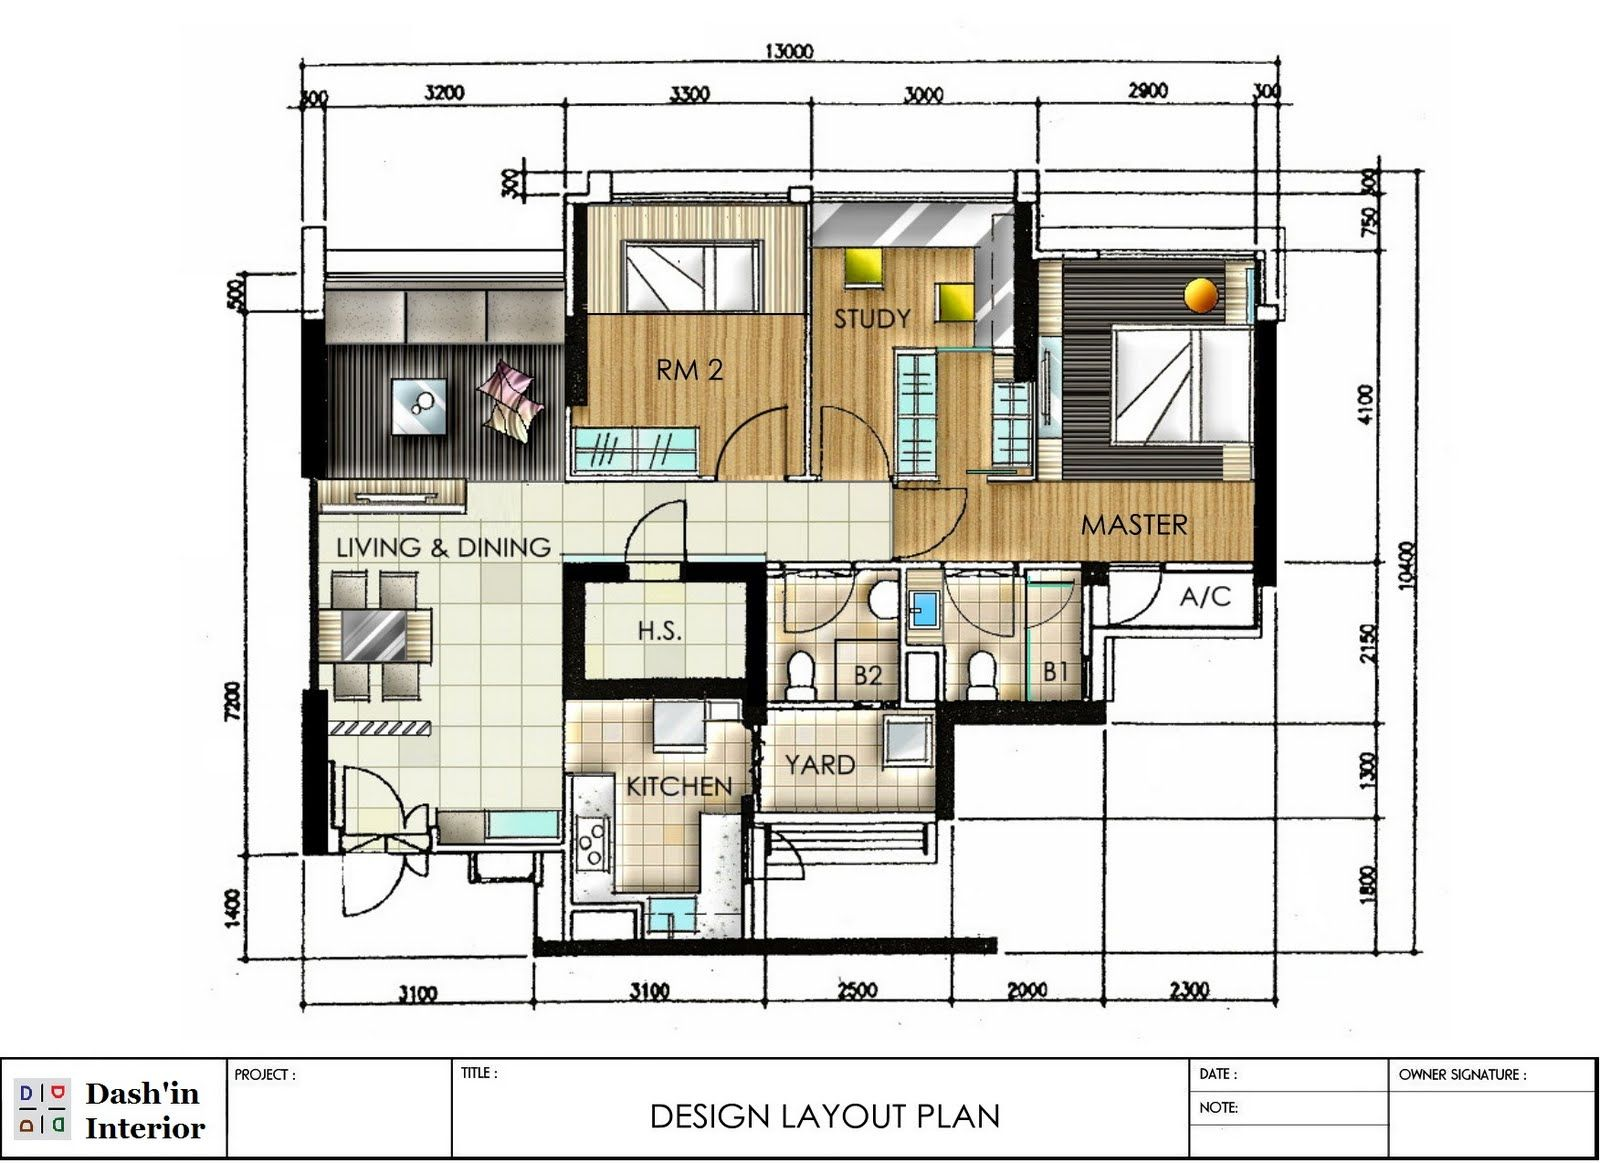 Dash Interior Hand Drawn Designs Floor Plan Layout That This - Design a floor plan template